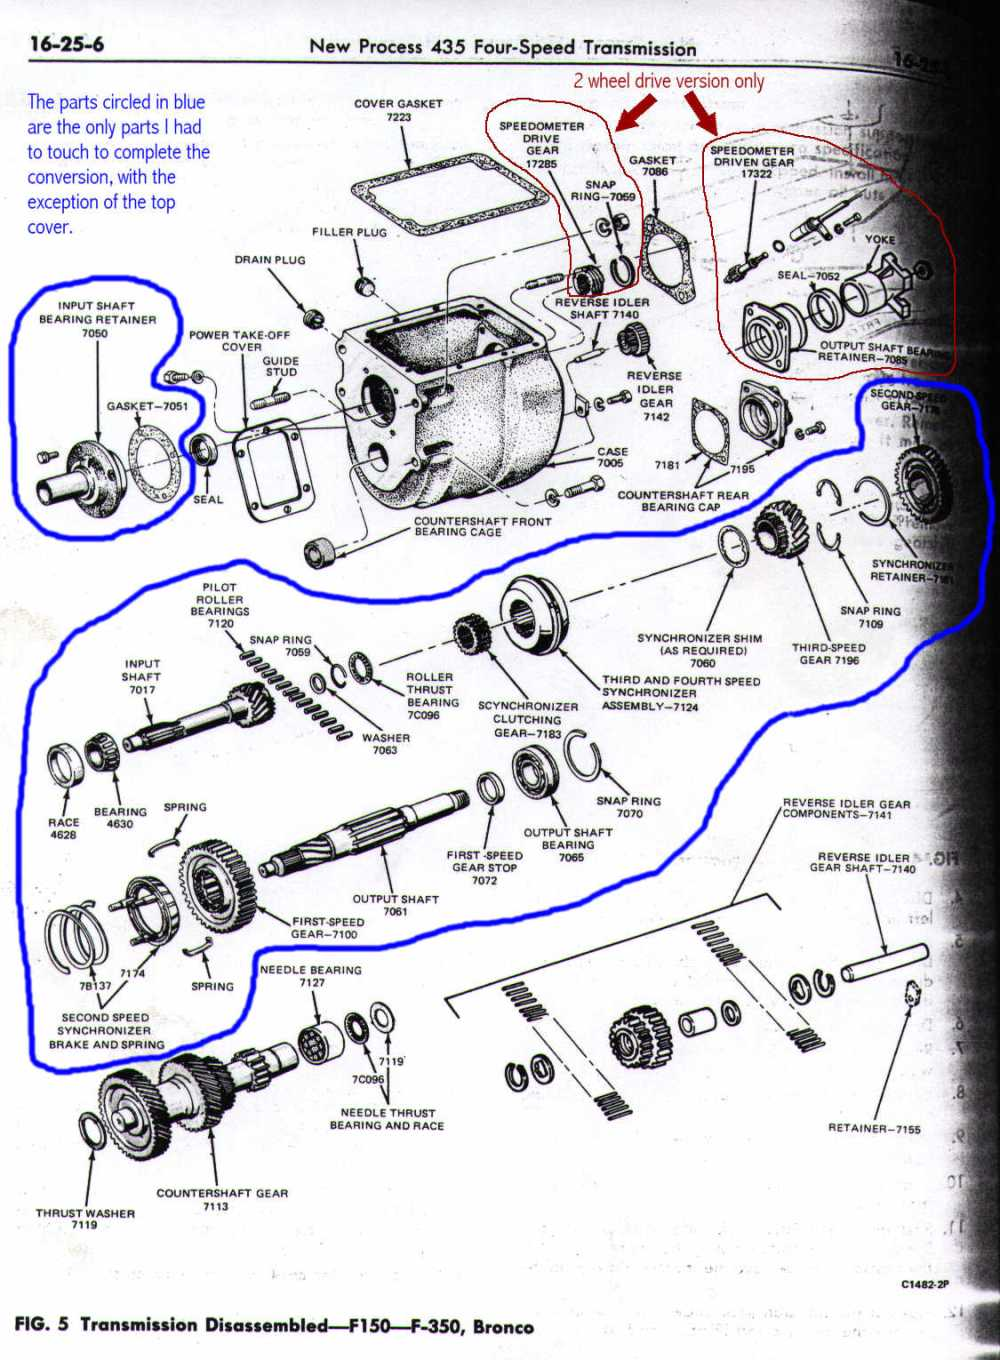 medium resolution of ford np435 diagram wiring diagram third level auto transmission diagram diagram of np435 wiring diagram todays